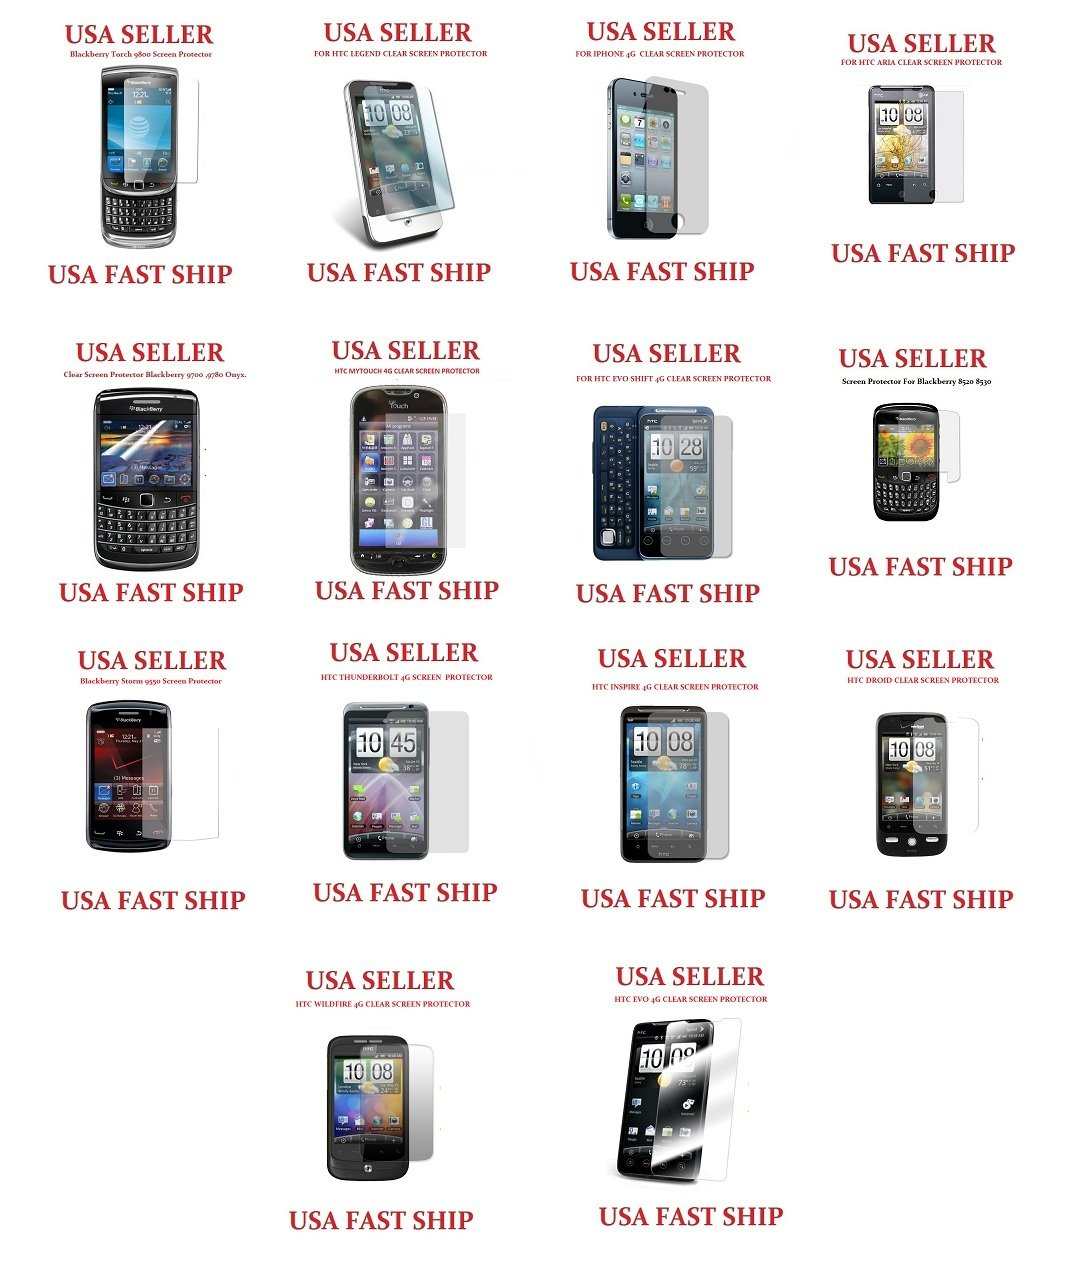 50 Units Clear Screen Protectors Wholesale lot htc Legend Aria Wildfire Evo blackberry iphone 4 g